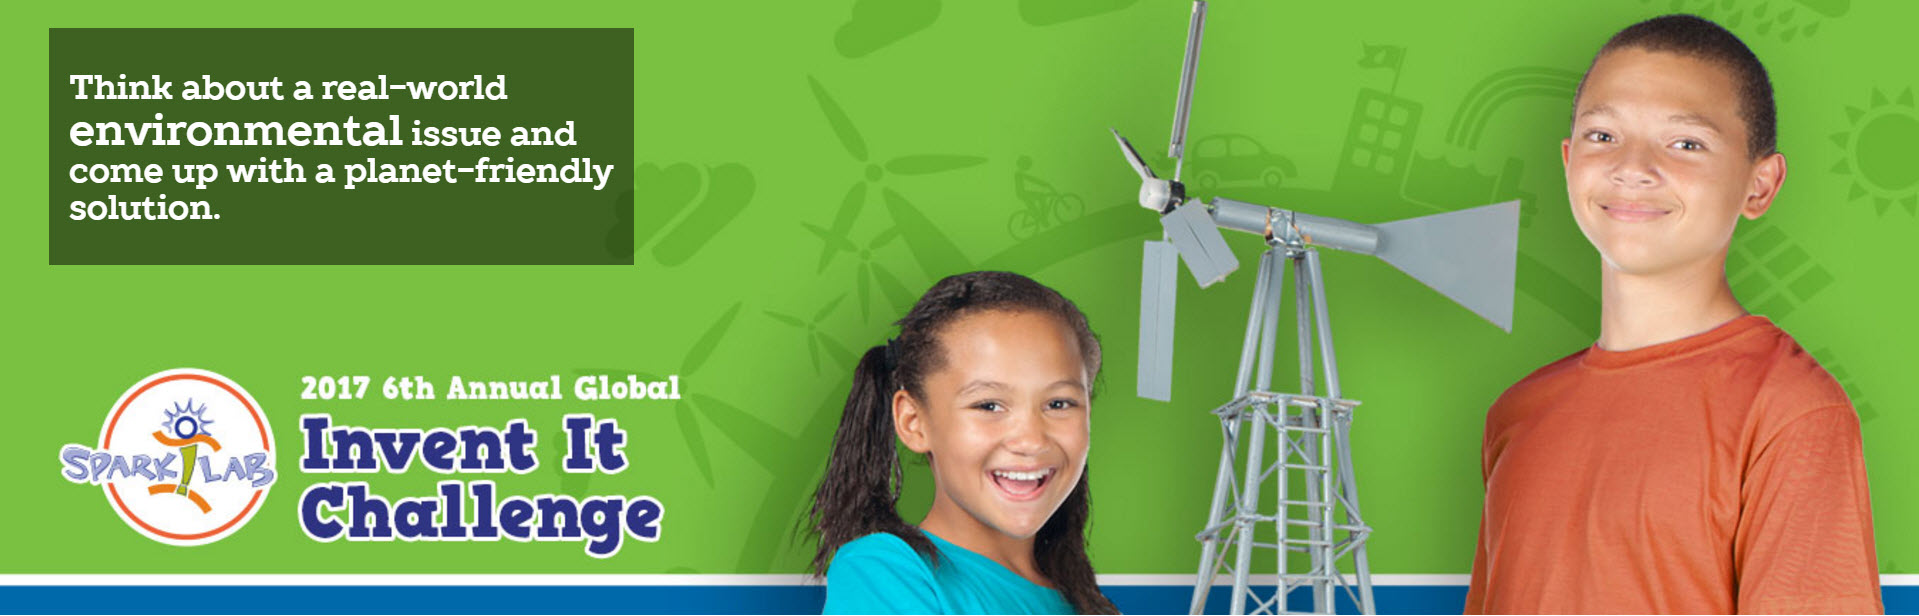 6th Annual Spark! Lab Invent it Challenge for Kids Worldwide